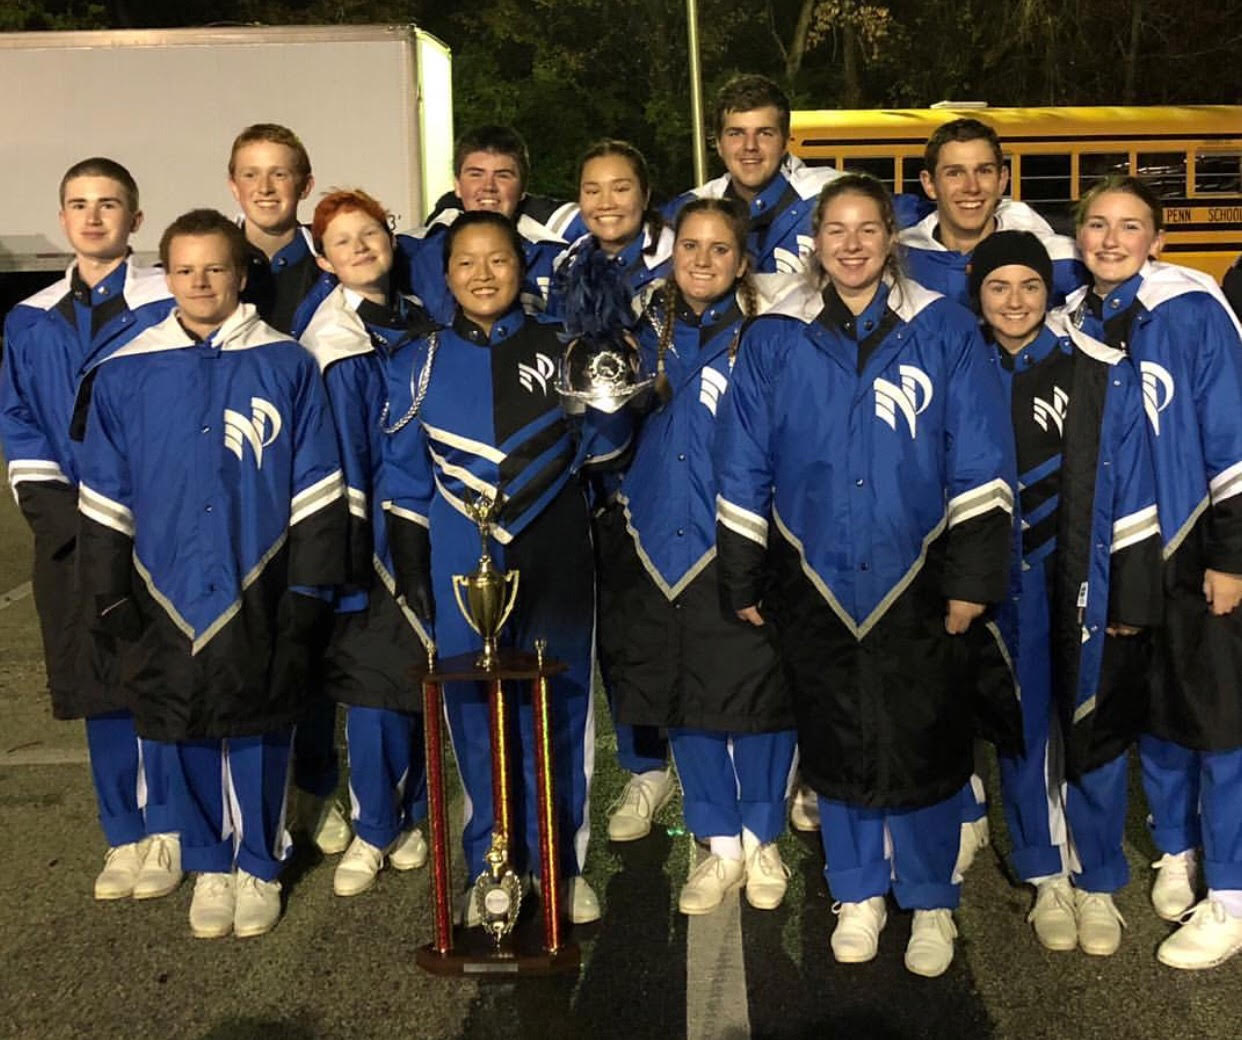 The Marching Knights pose for a picture after winning the state championship.